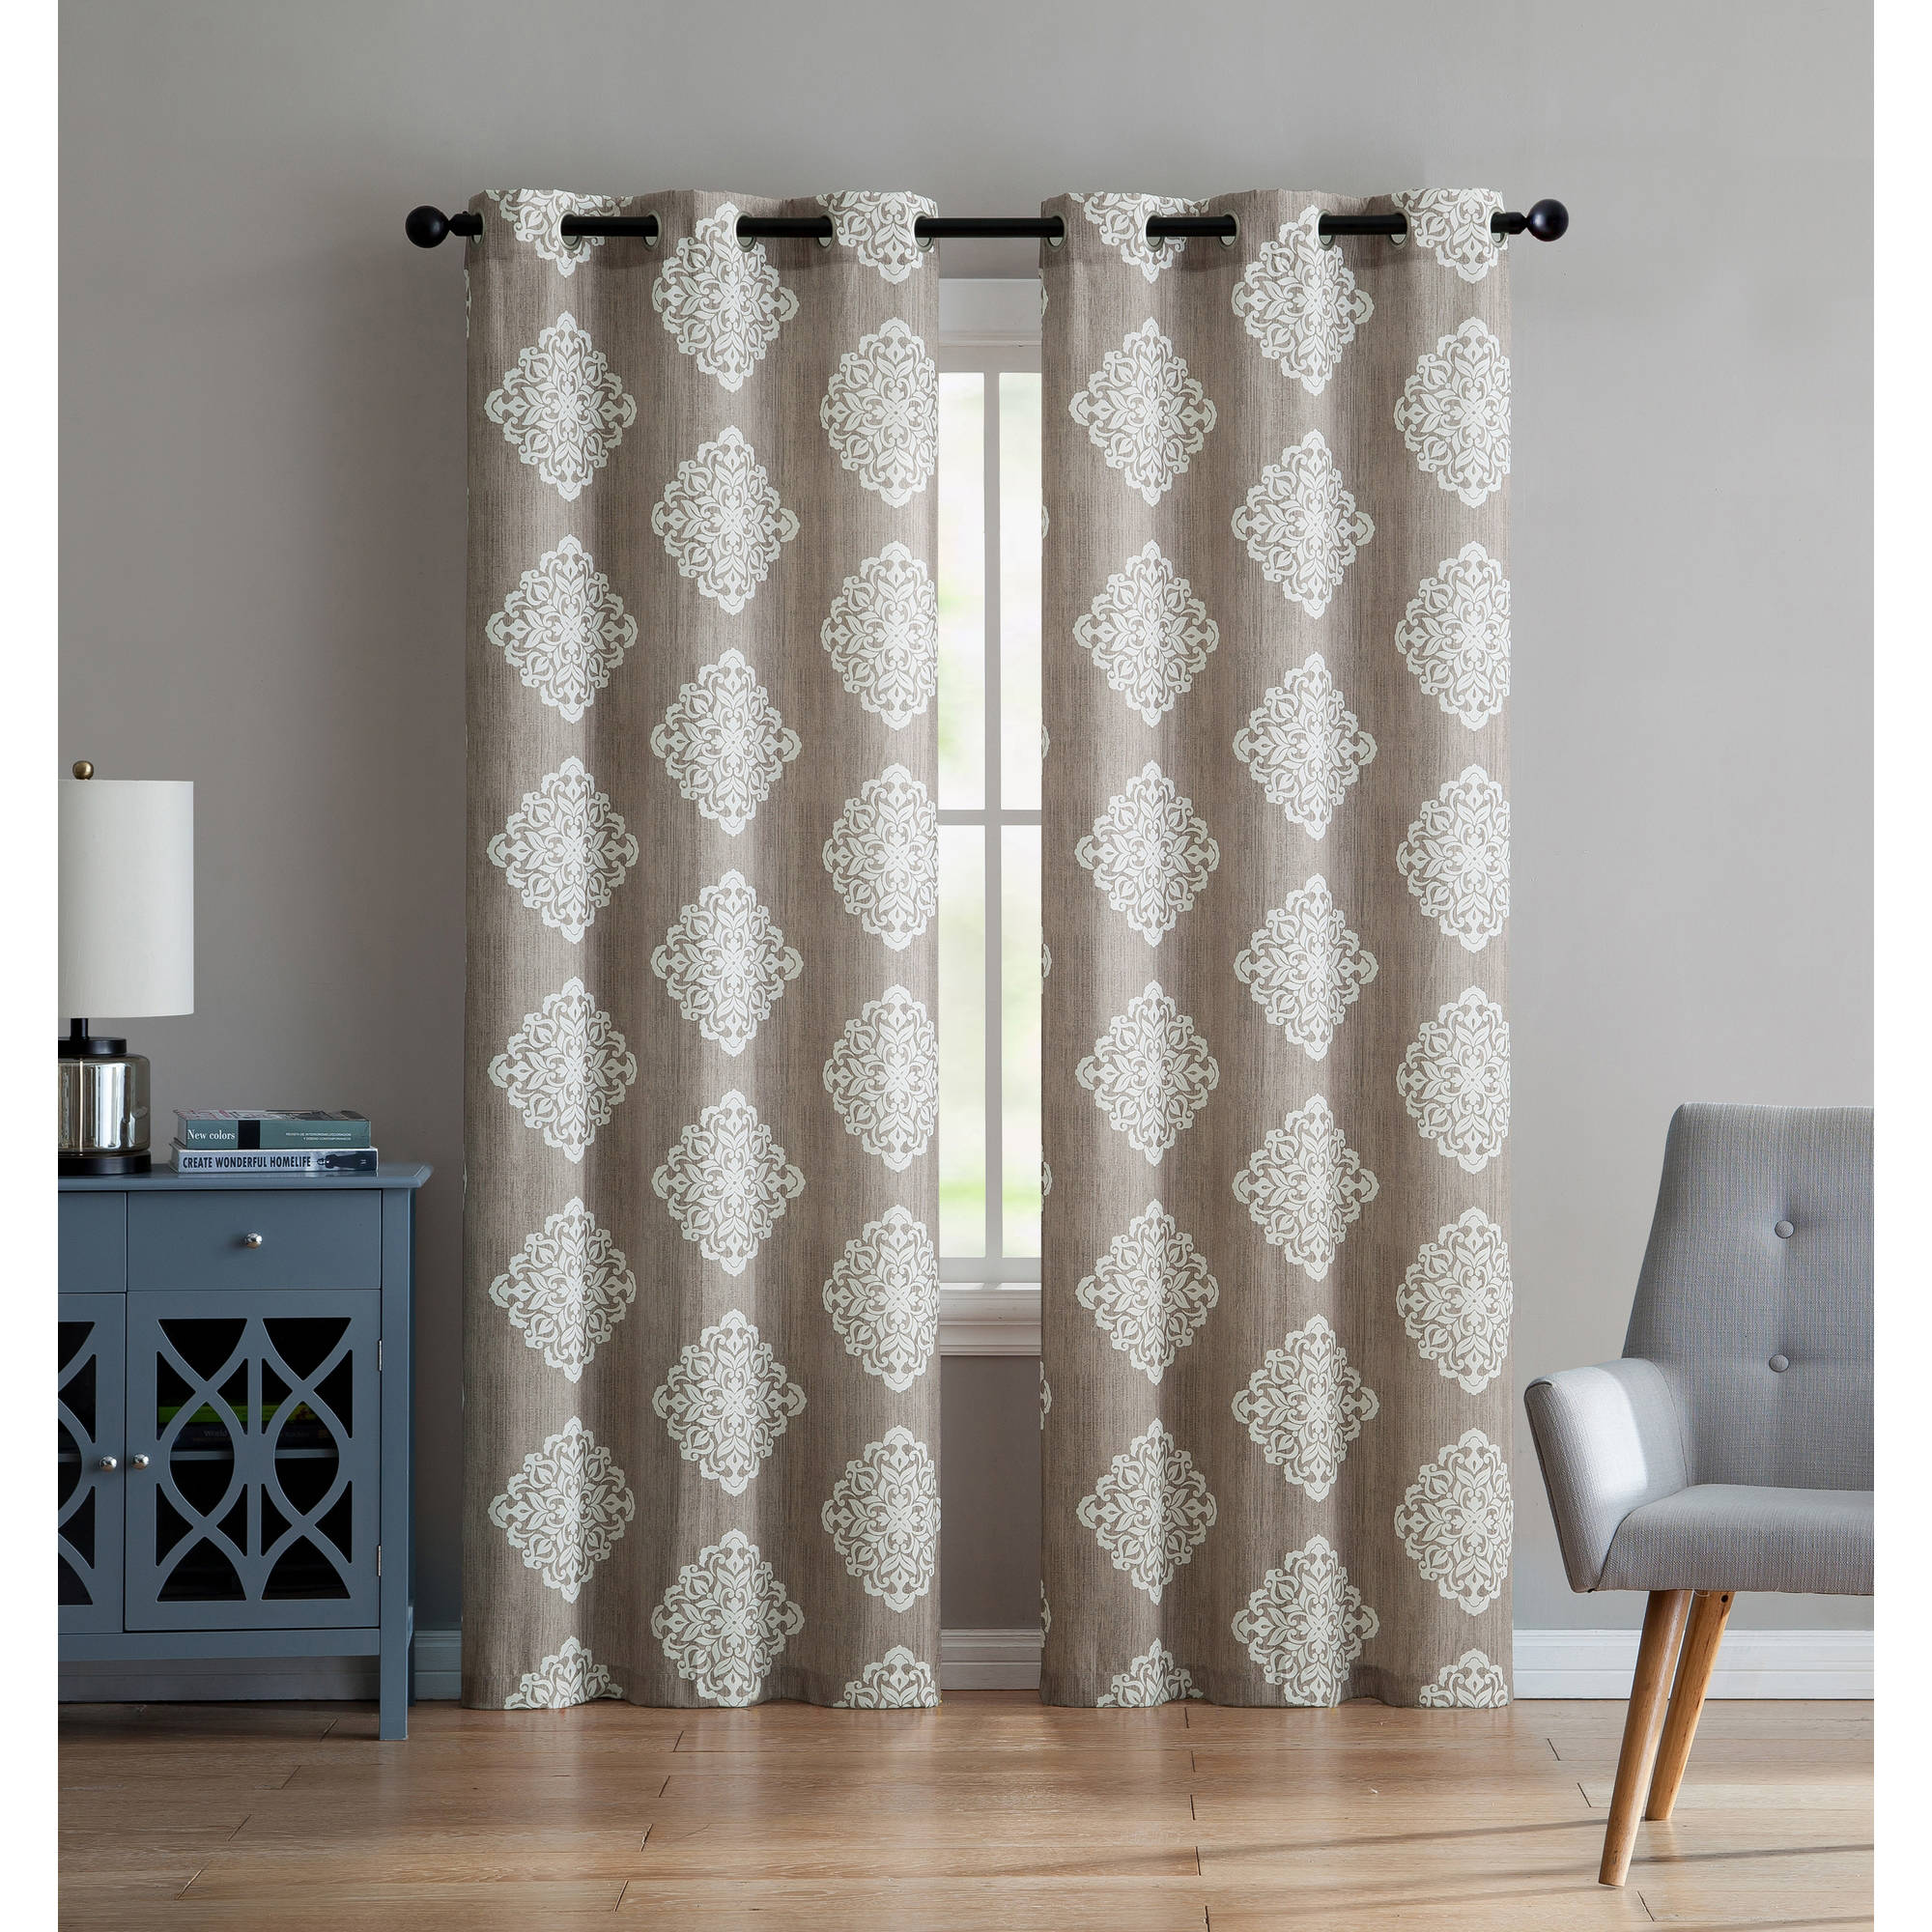 VCNY Home Aria Damask Grommet Top Window Curtain Panel, Set of 2, Multiple Sizes Available